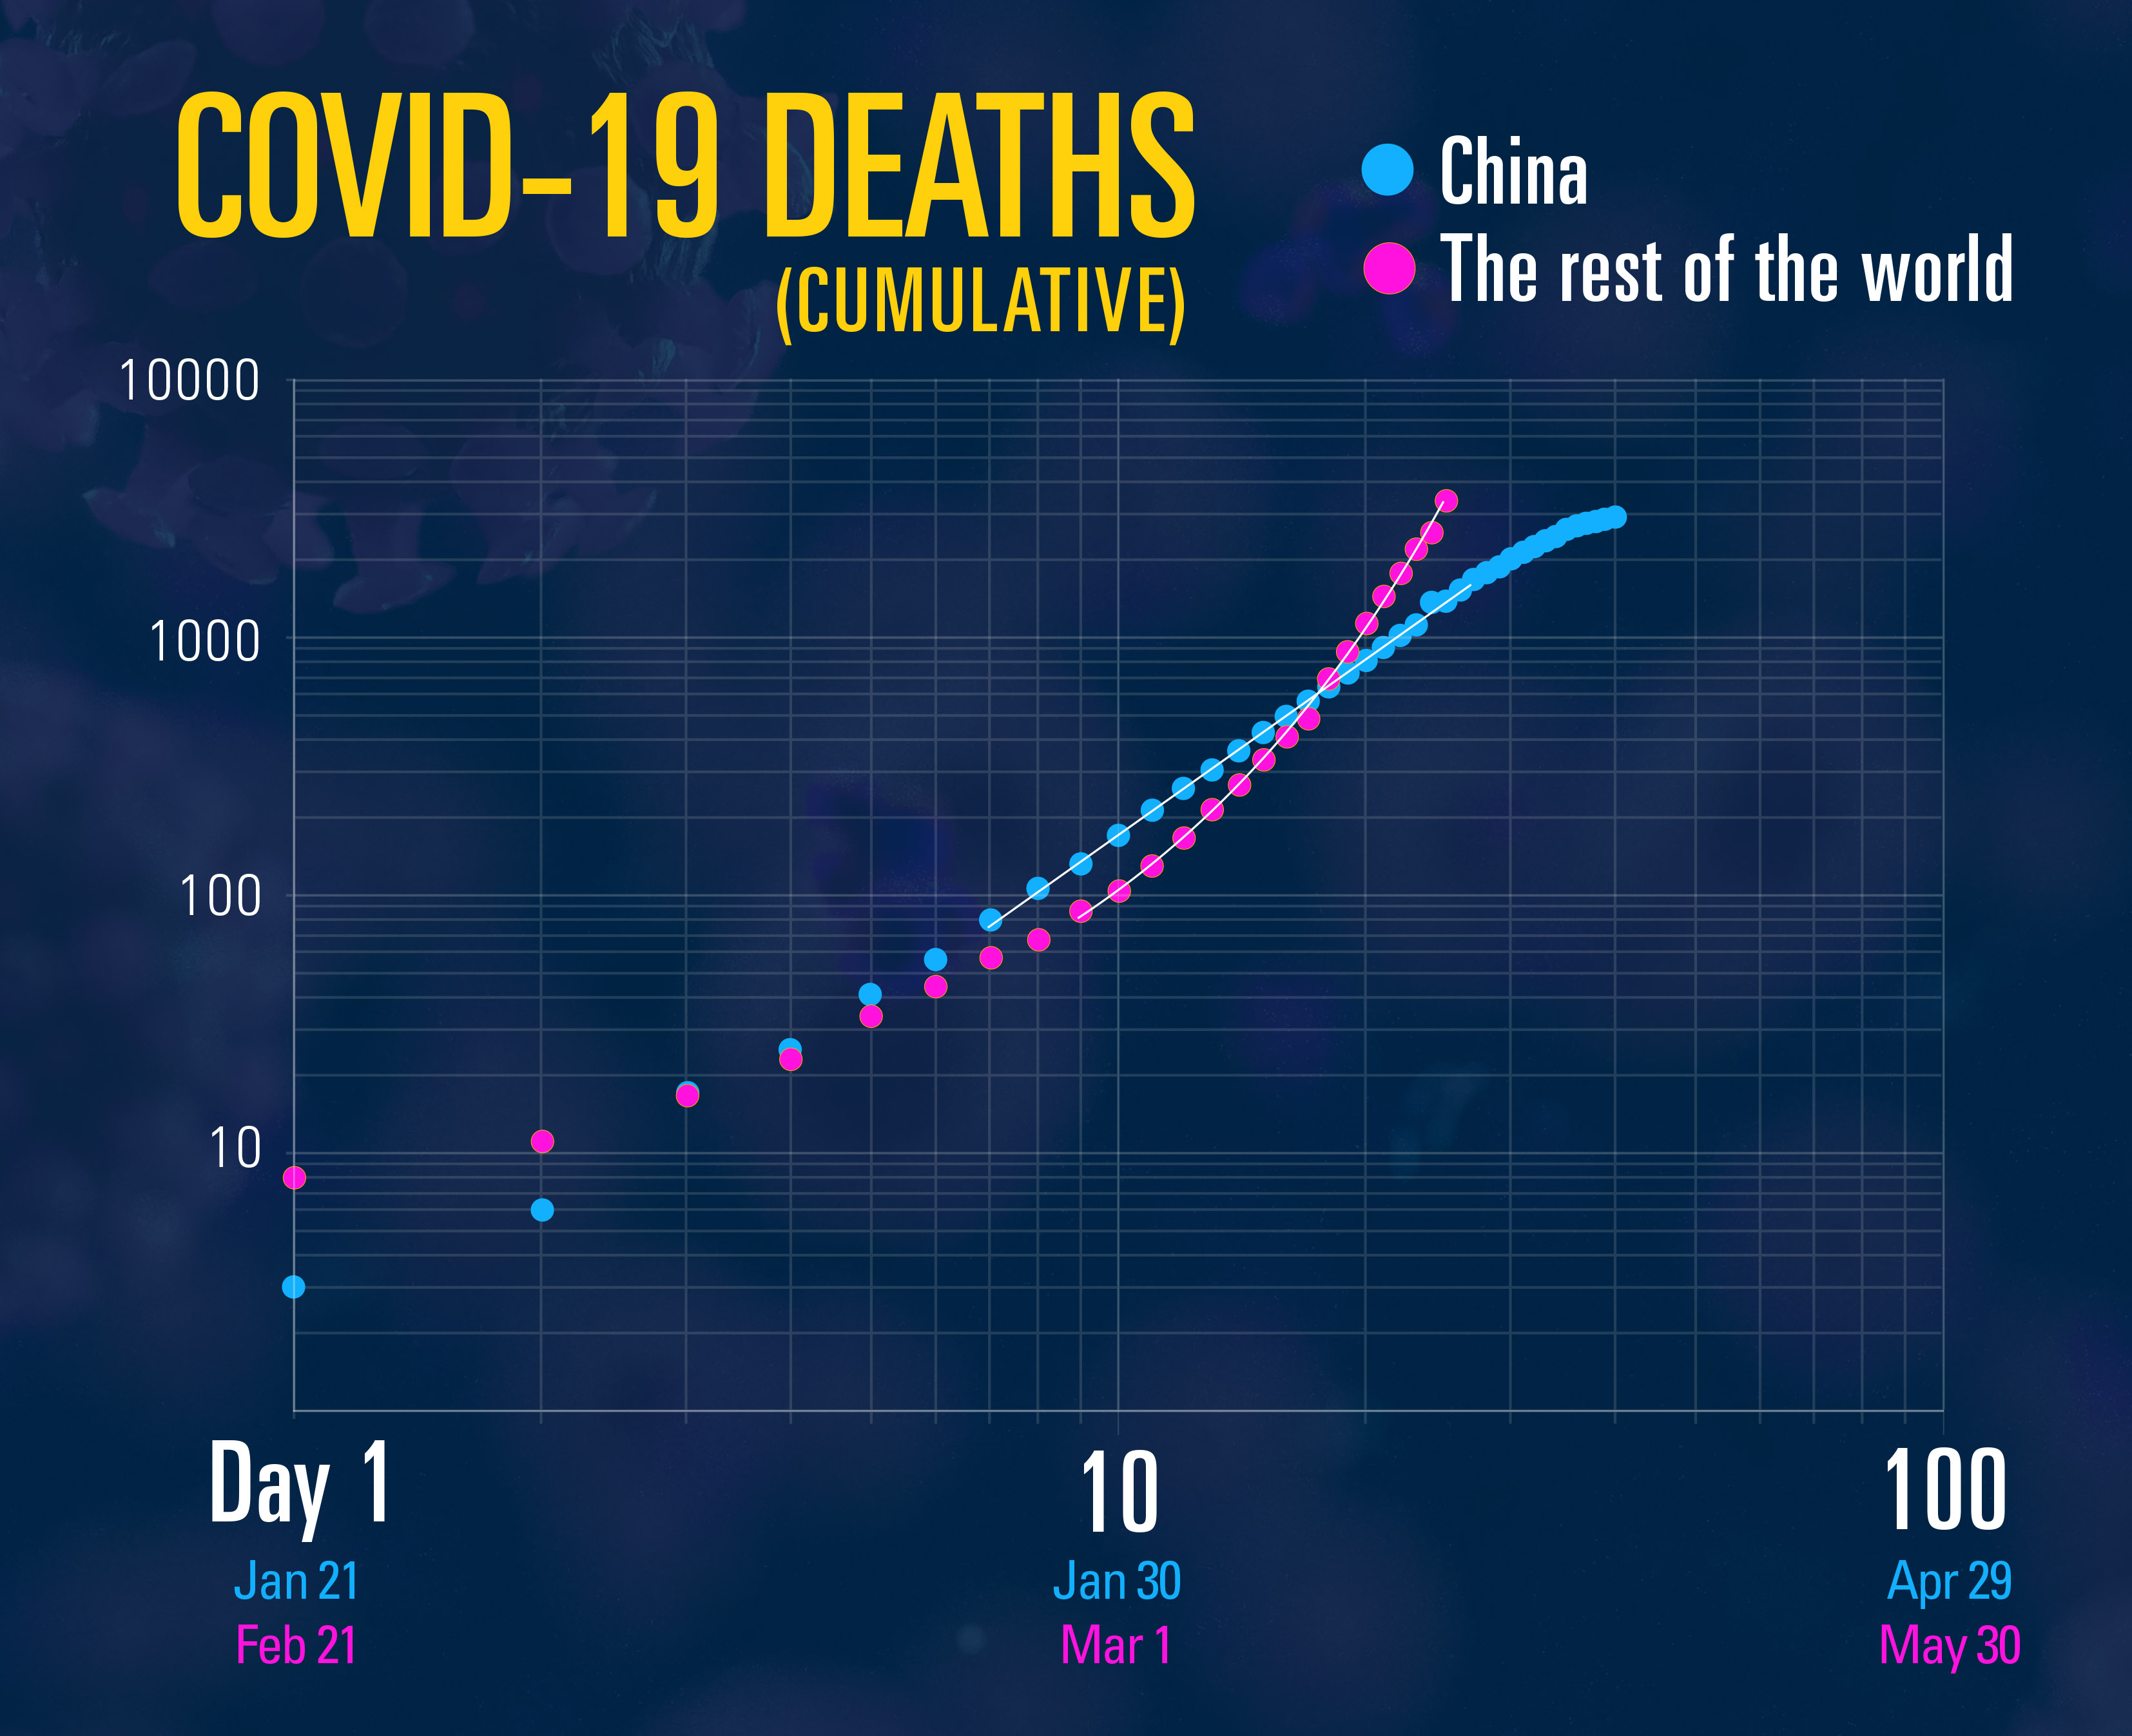 A graph comparing COVID-19 death rates in China with the rest of the world.